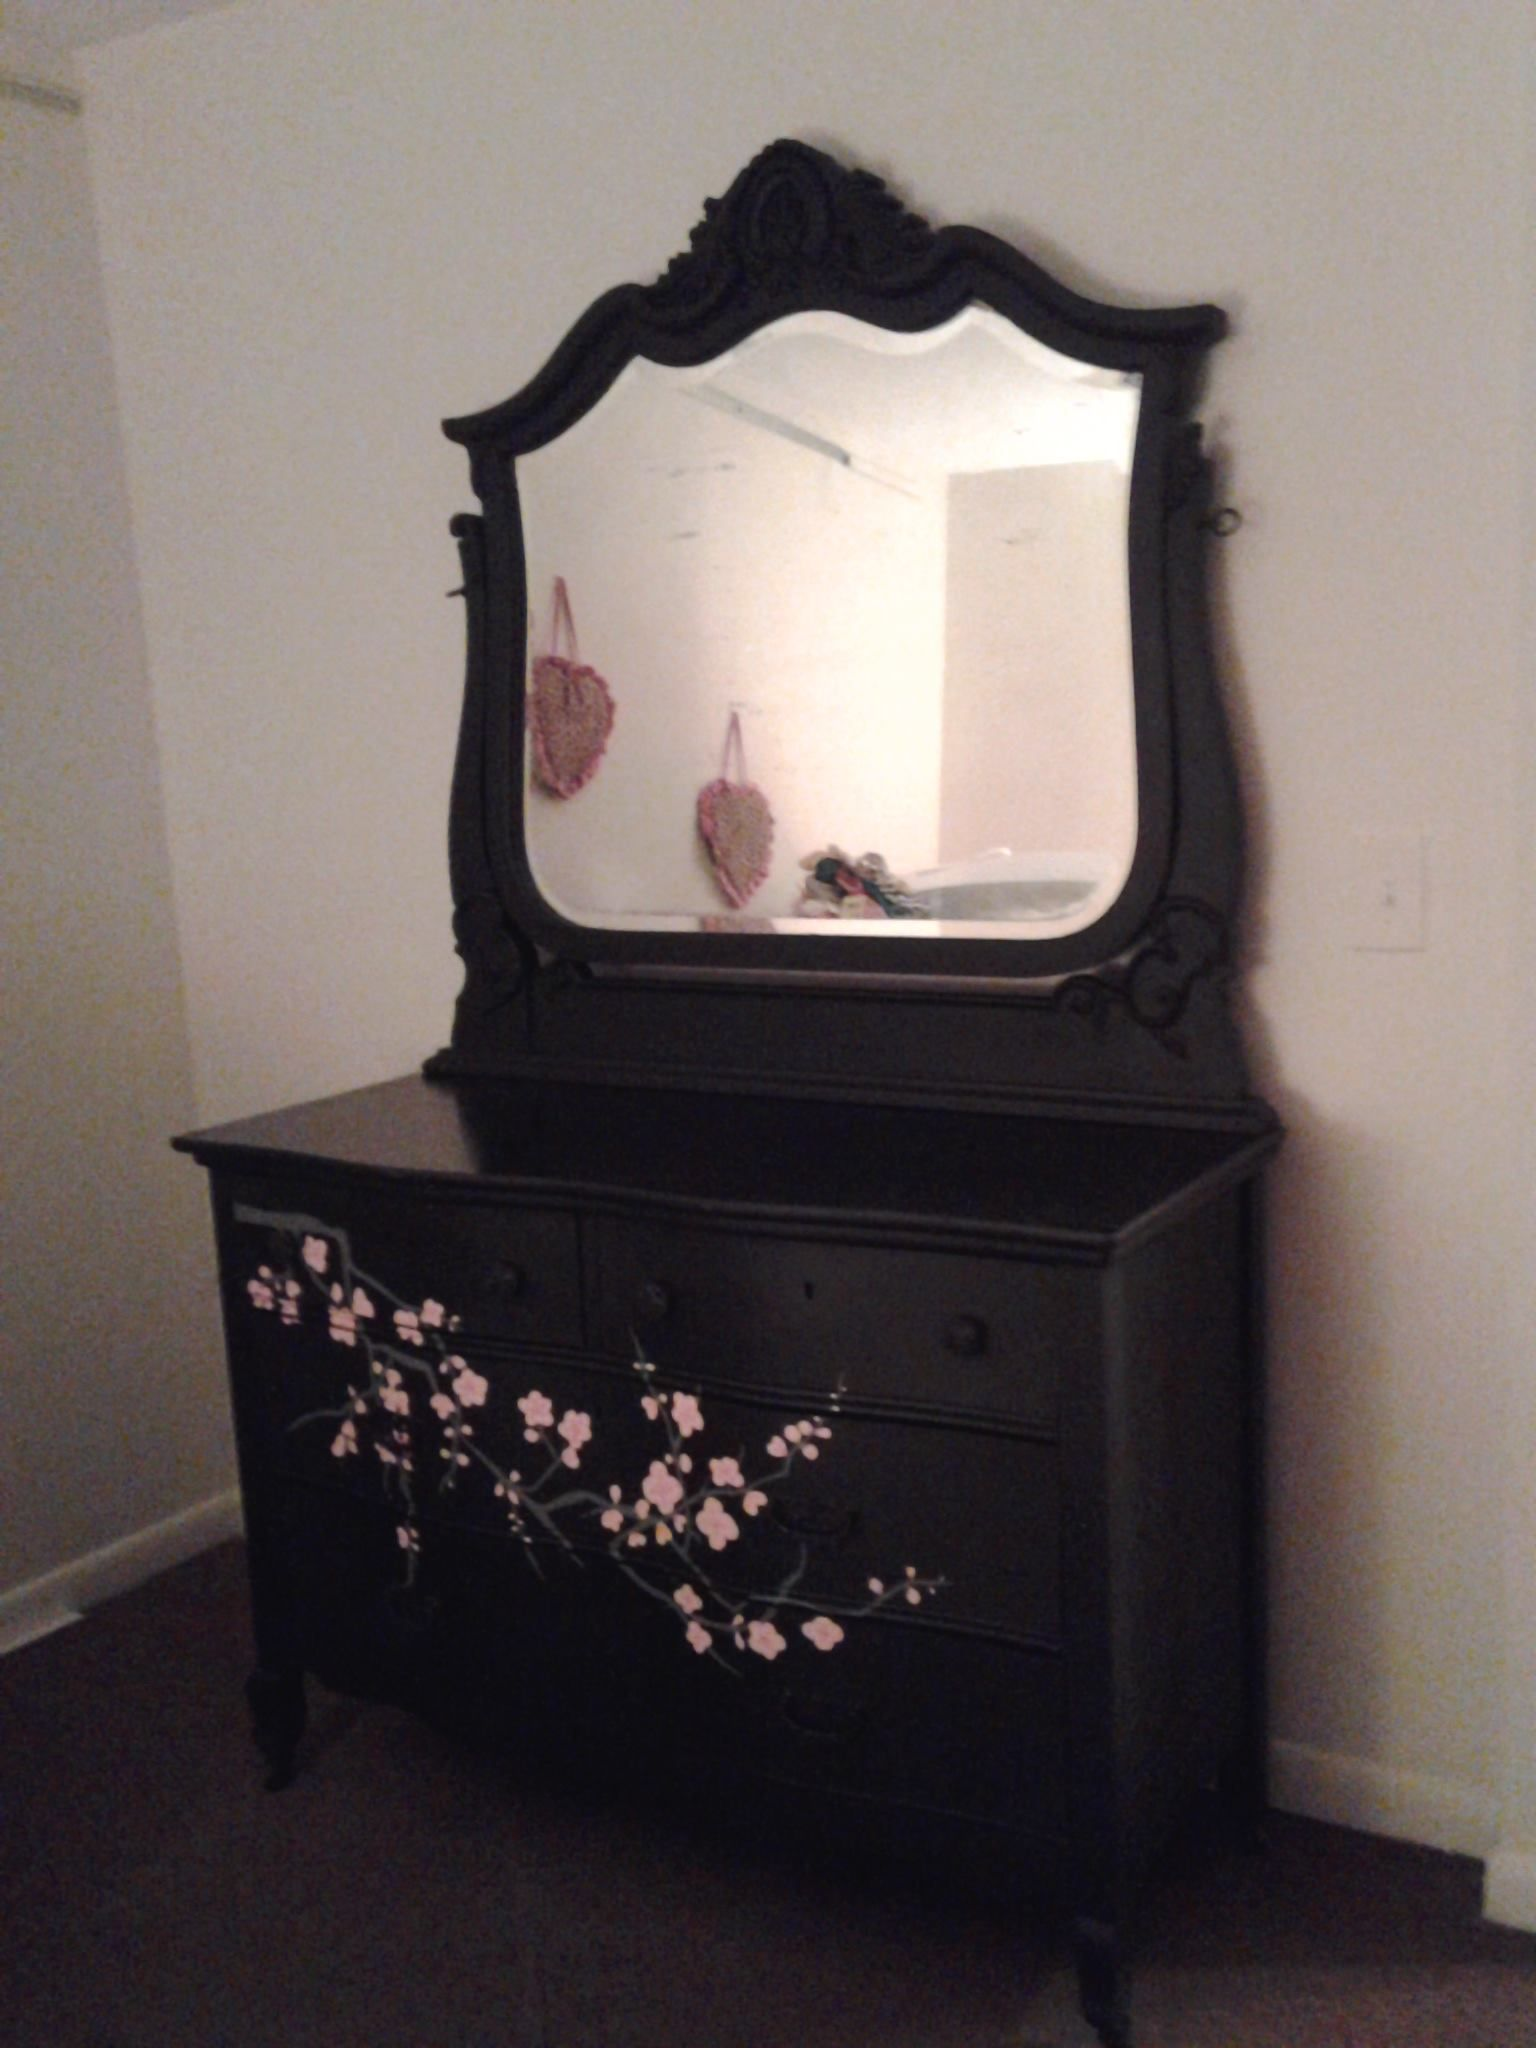 Flat Black Painted Dresser Inside The Drawers Are Pink